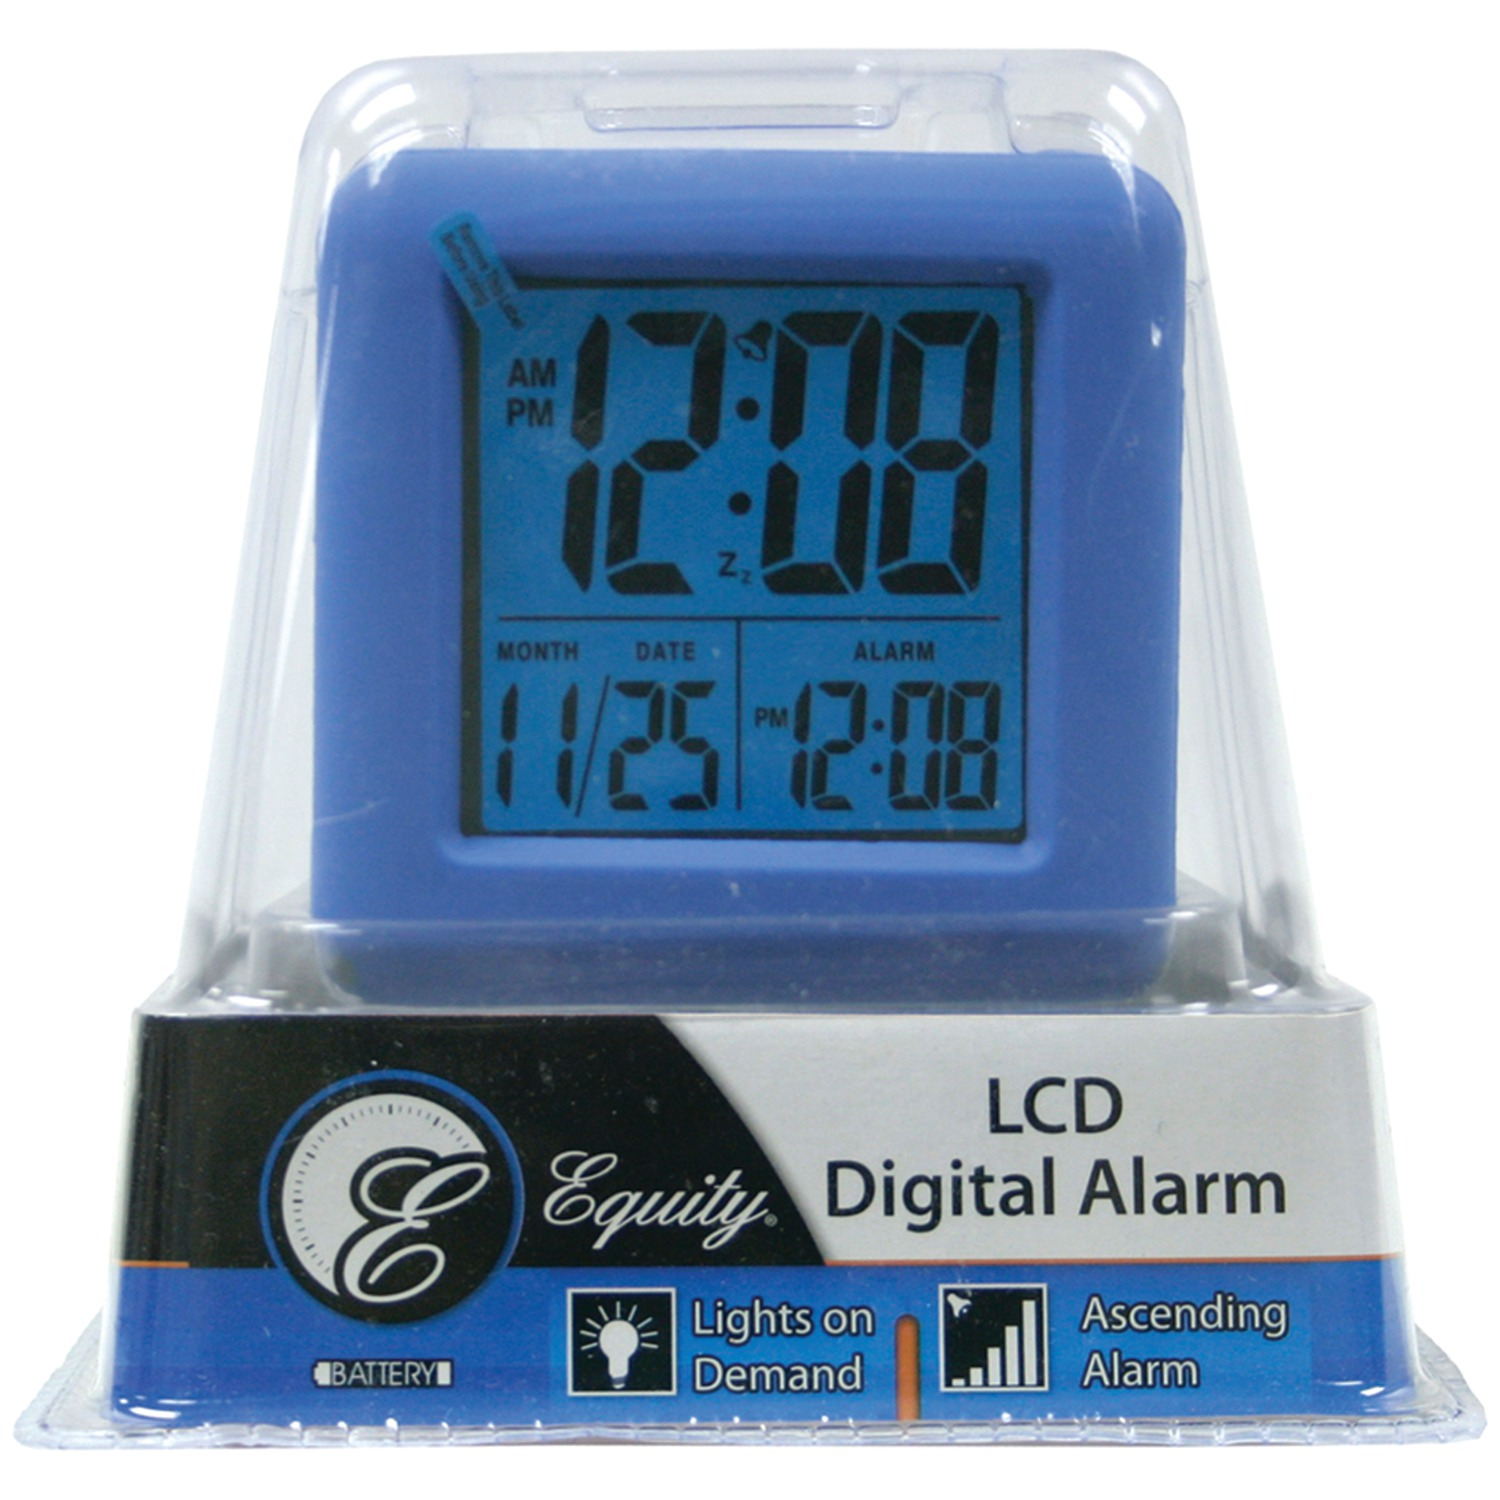 Equity by La Crosse 70902 Digital Cube Alarm Clock with On-Demand ...